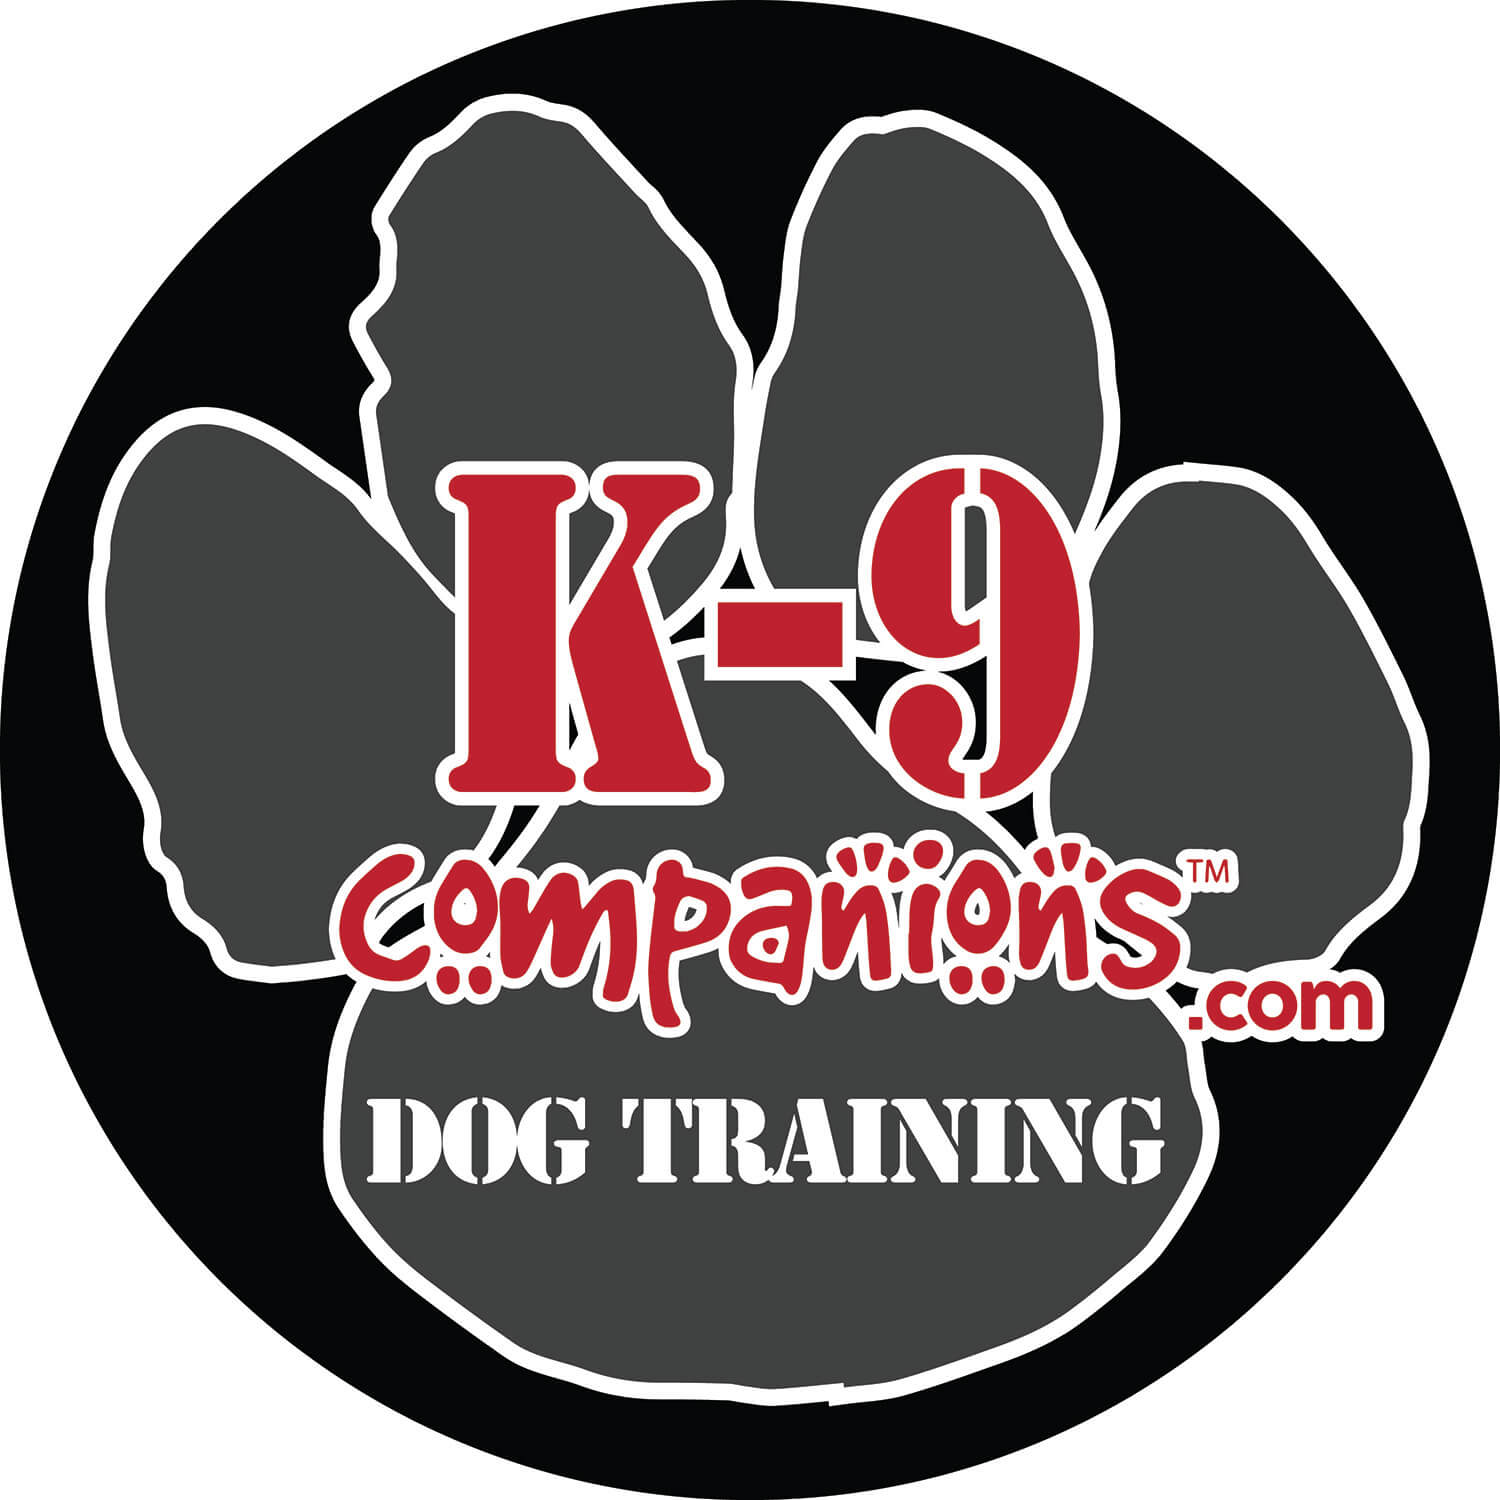 Dog Training, Puppy Training